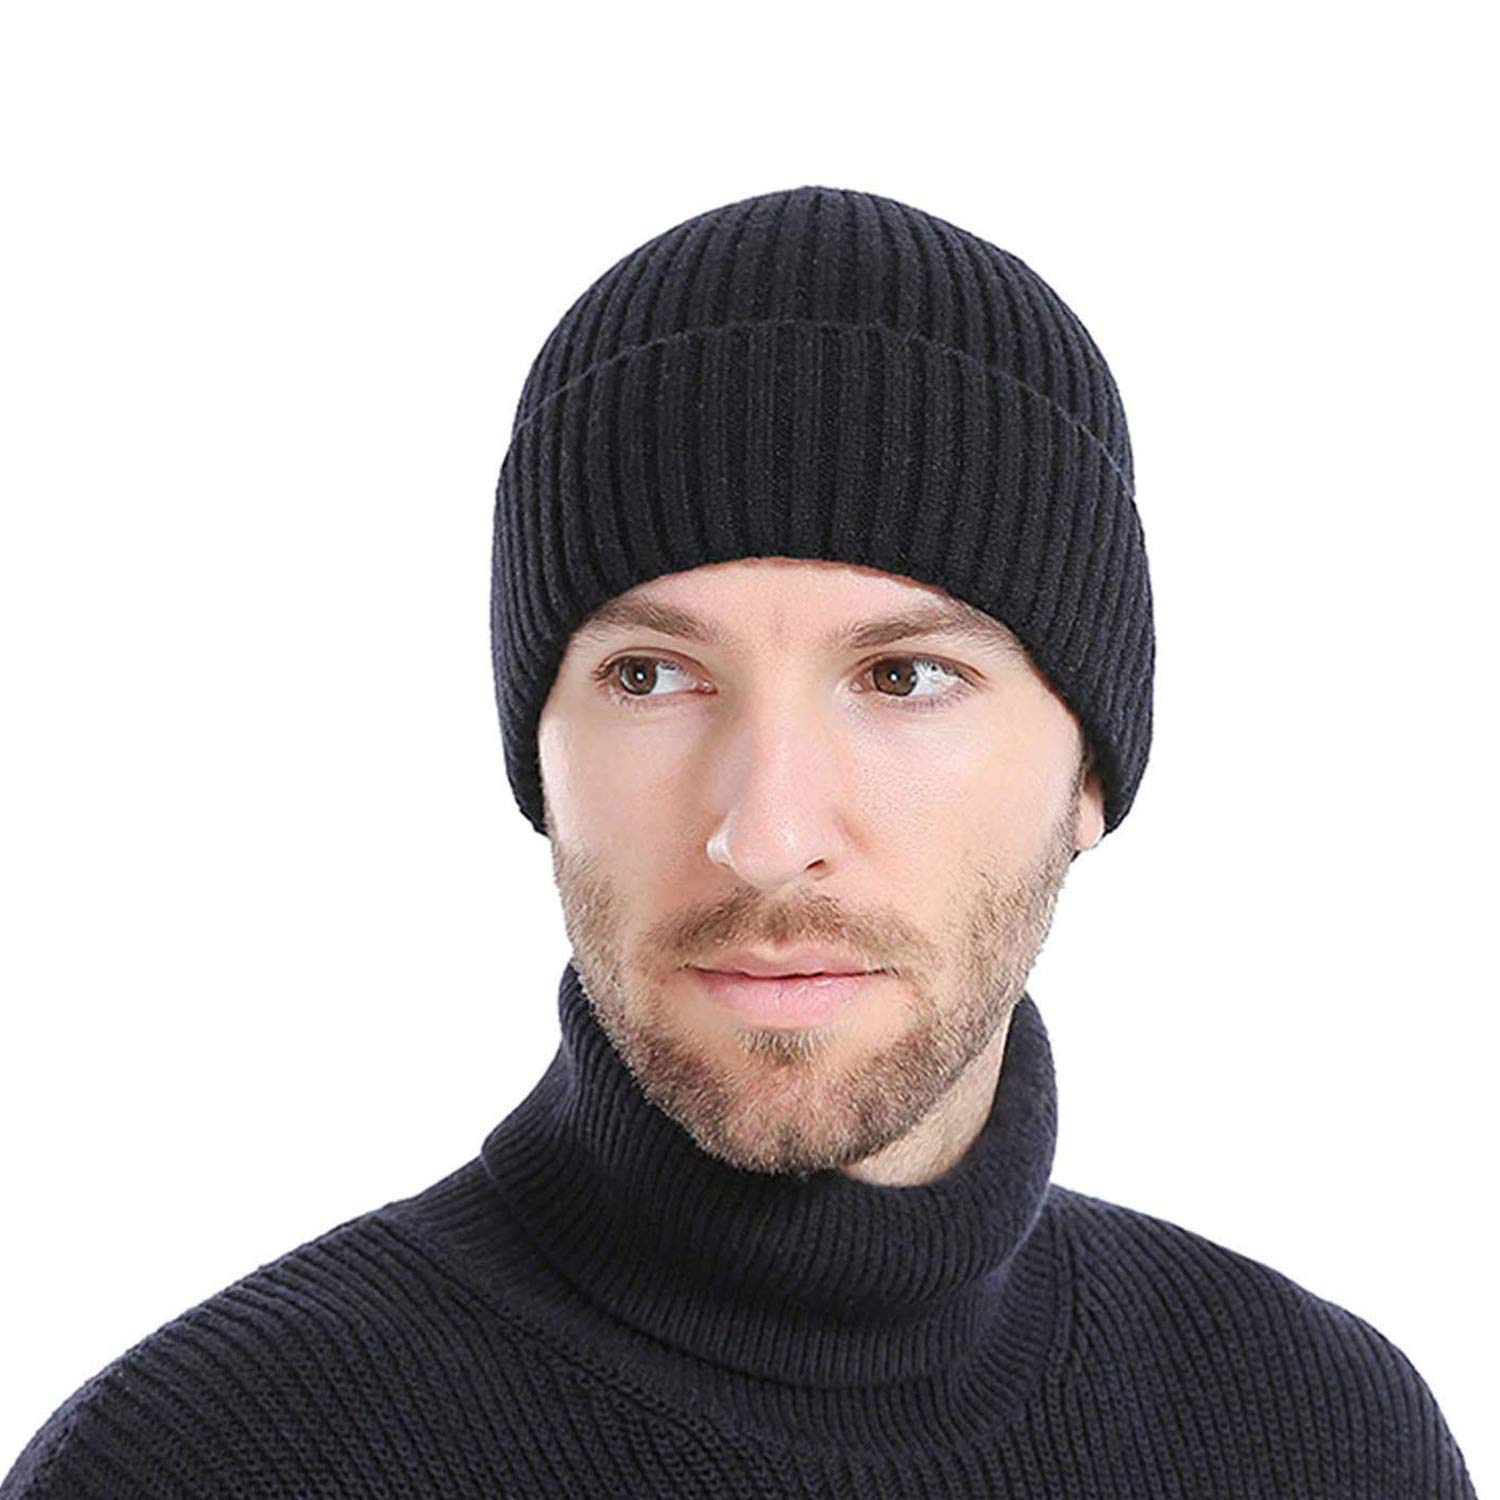 f3747280c21 Grab Offers Women s and Men s Wool Knitted Skull Hat Cap (Multicolour